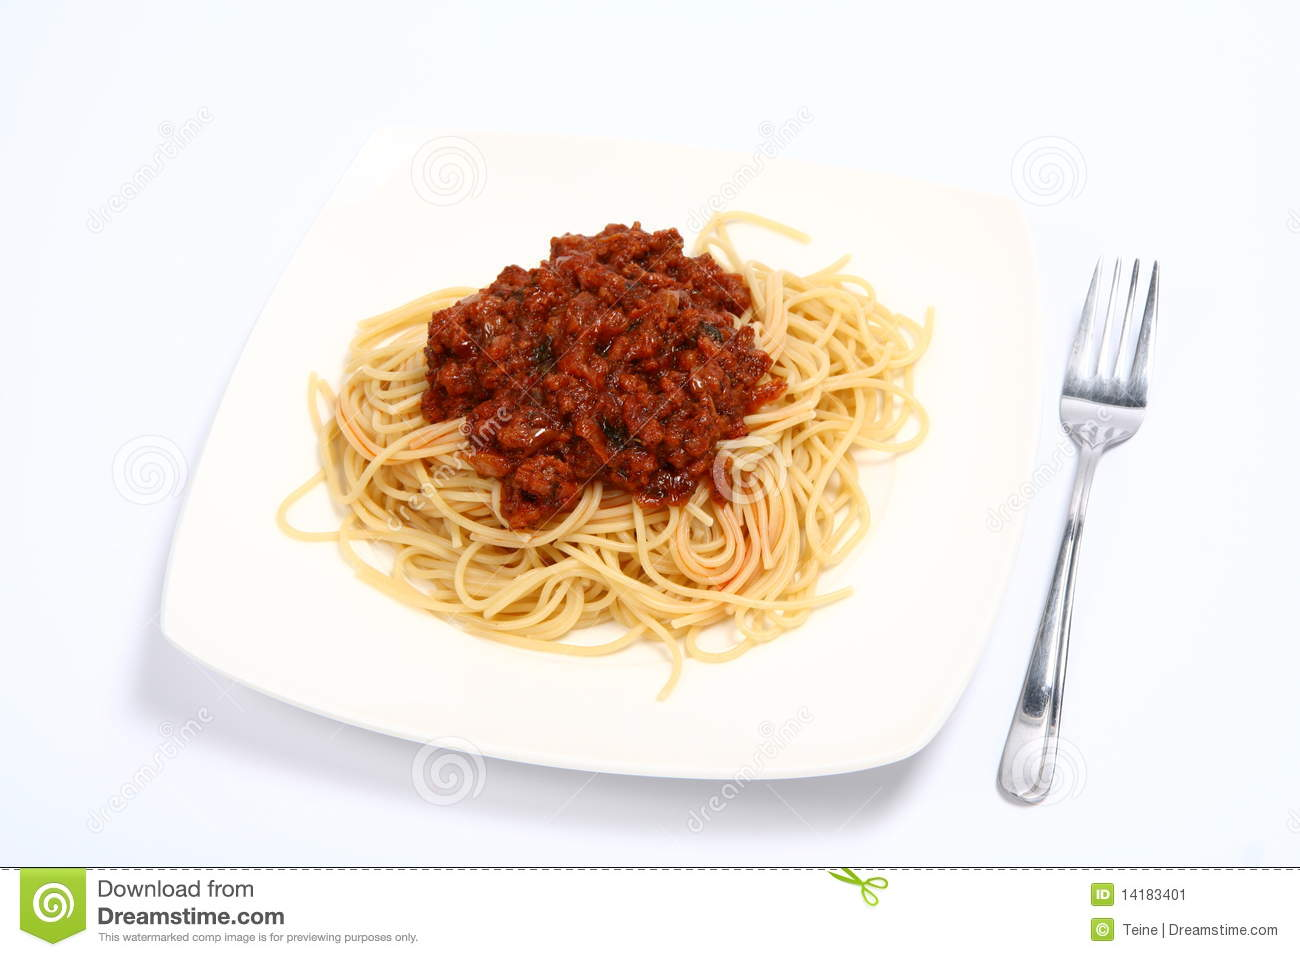 Pasta with bolognese sauce on a plate and a fork on white background.